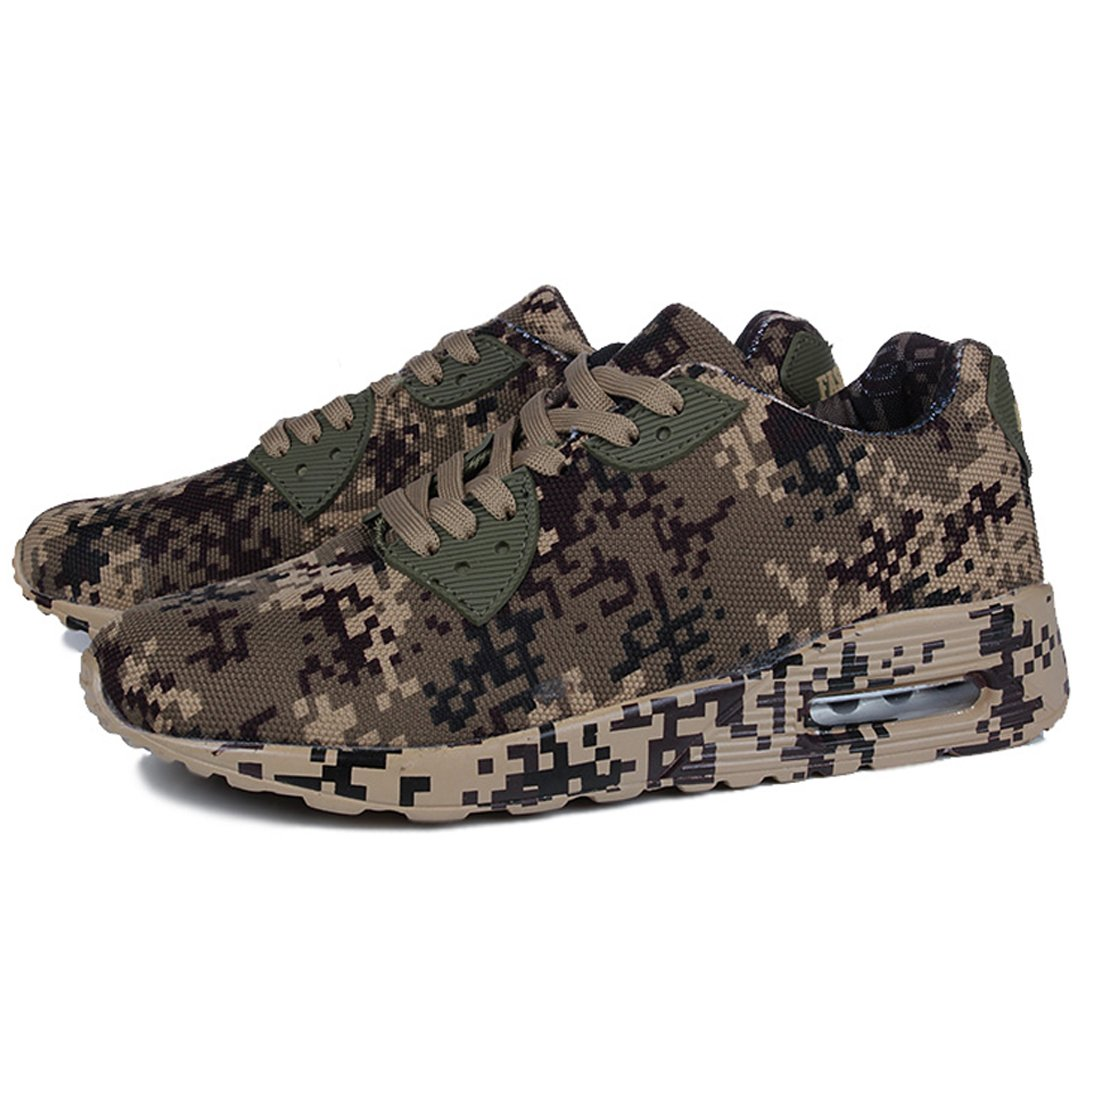 89ceb5ff3fb8 Amazon.com: Jacky's Camouflage Unisex Men's Shoes Height Increase ...